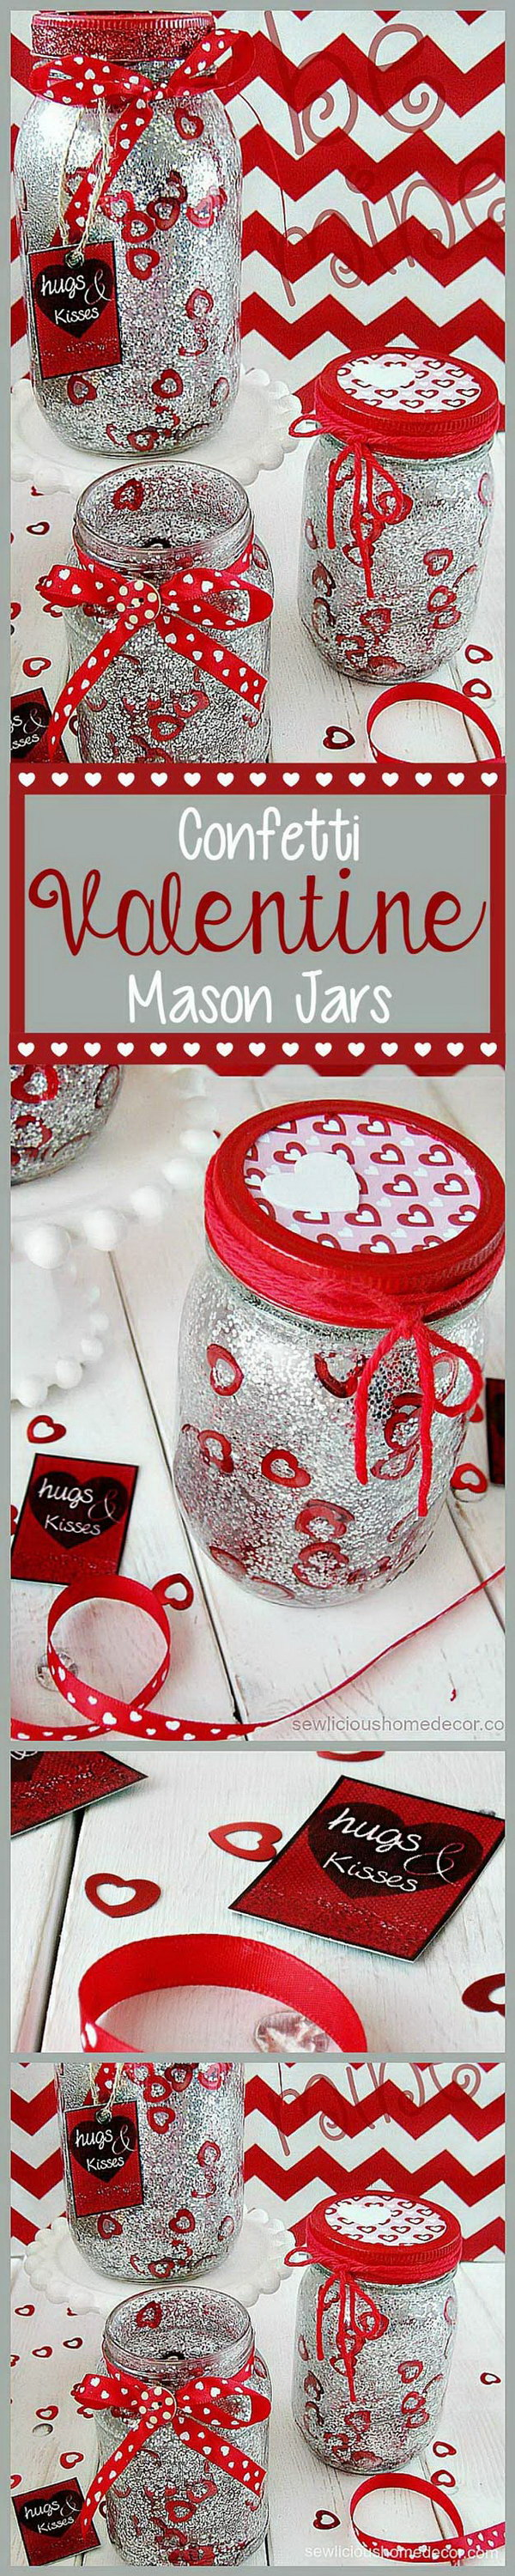 Silver Valentine Jars With Glitter and Confetti